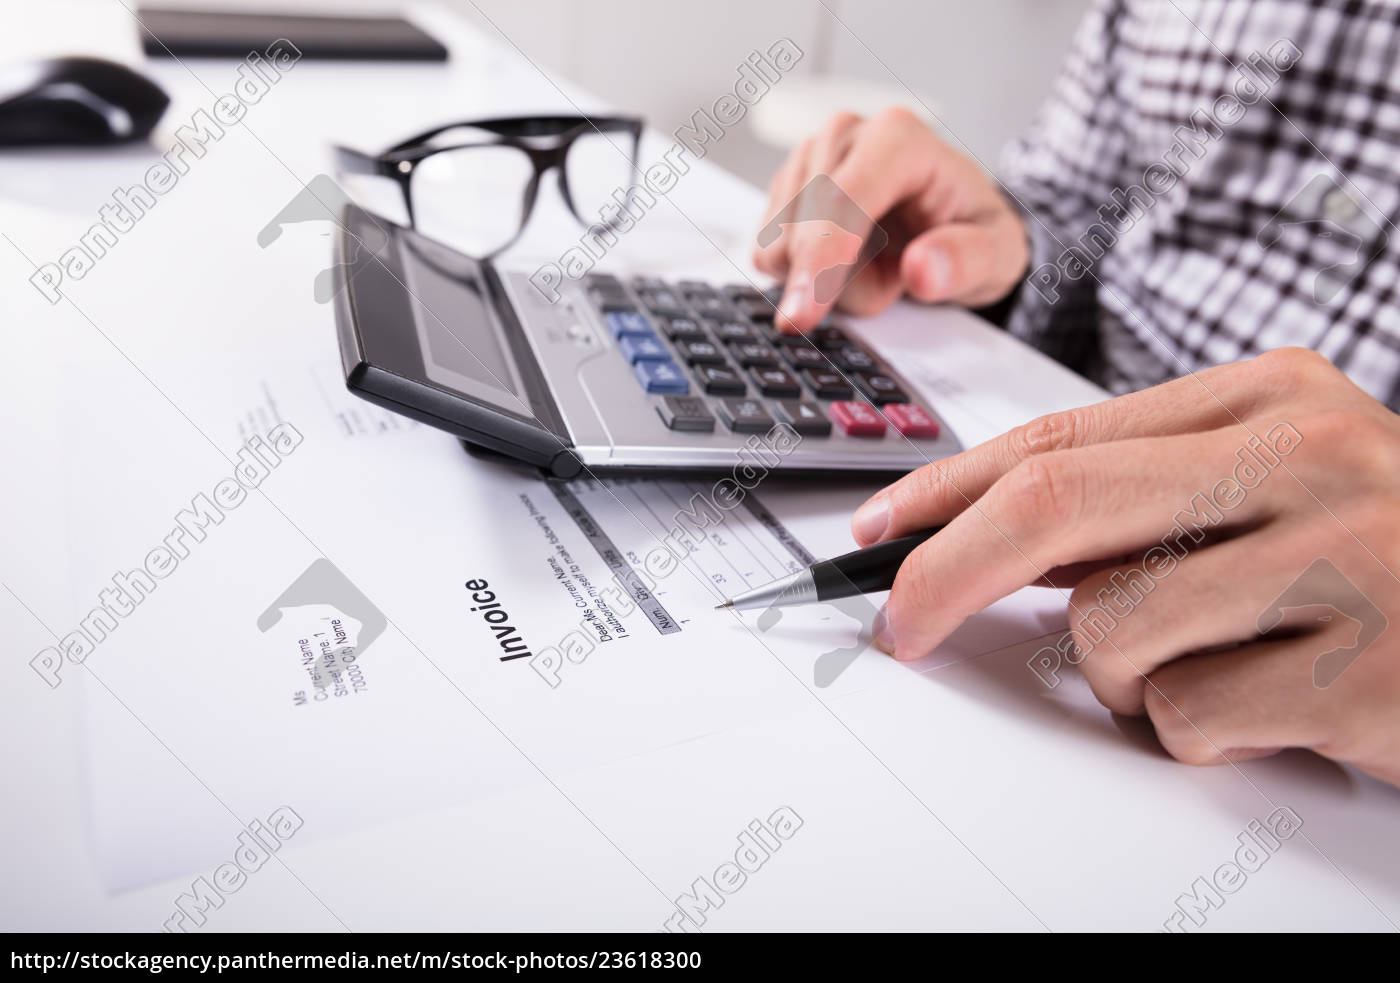 businessman's, hands, calculating, invoice - 23618300